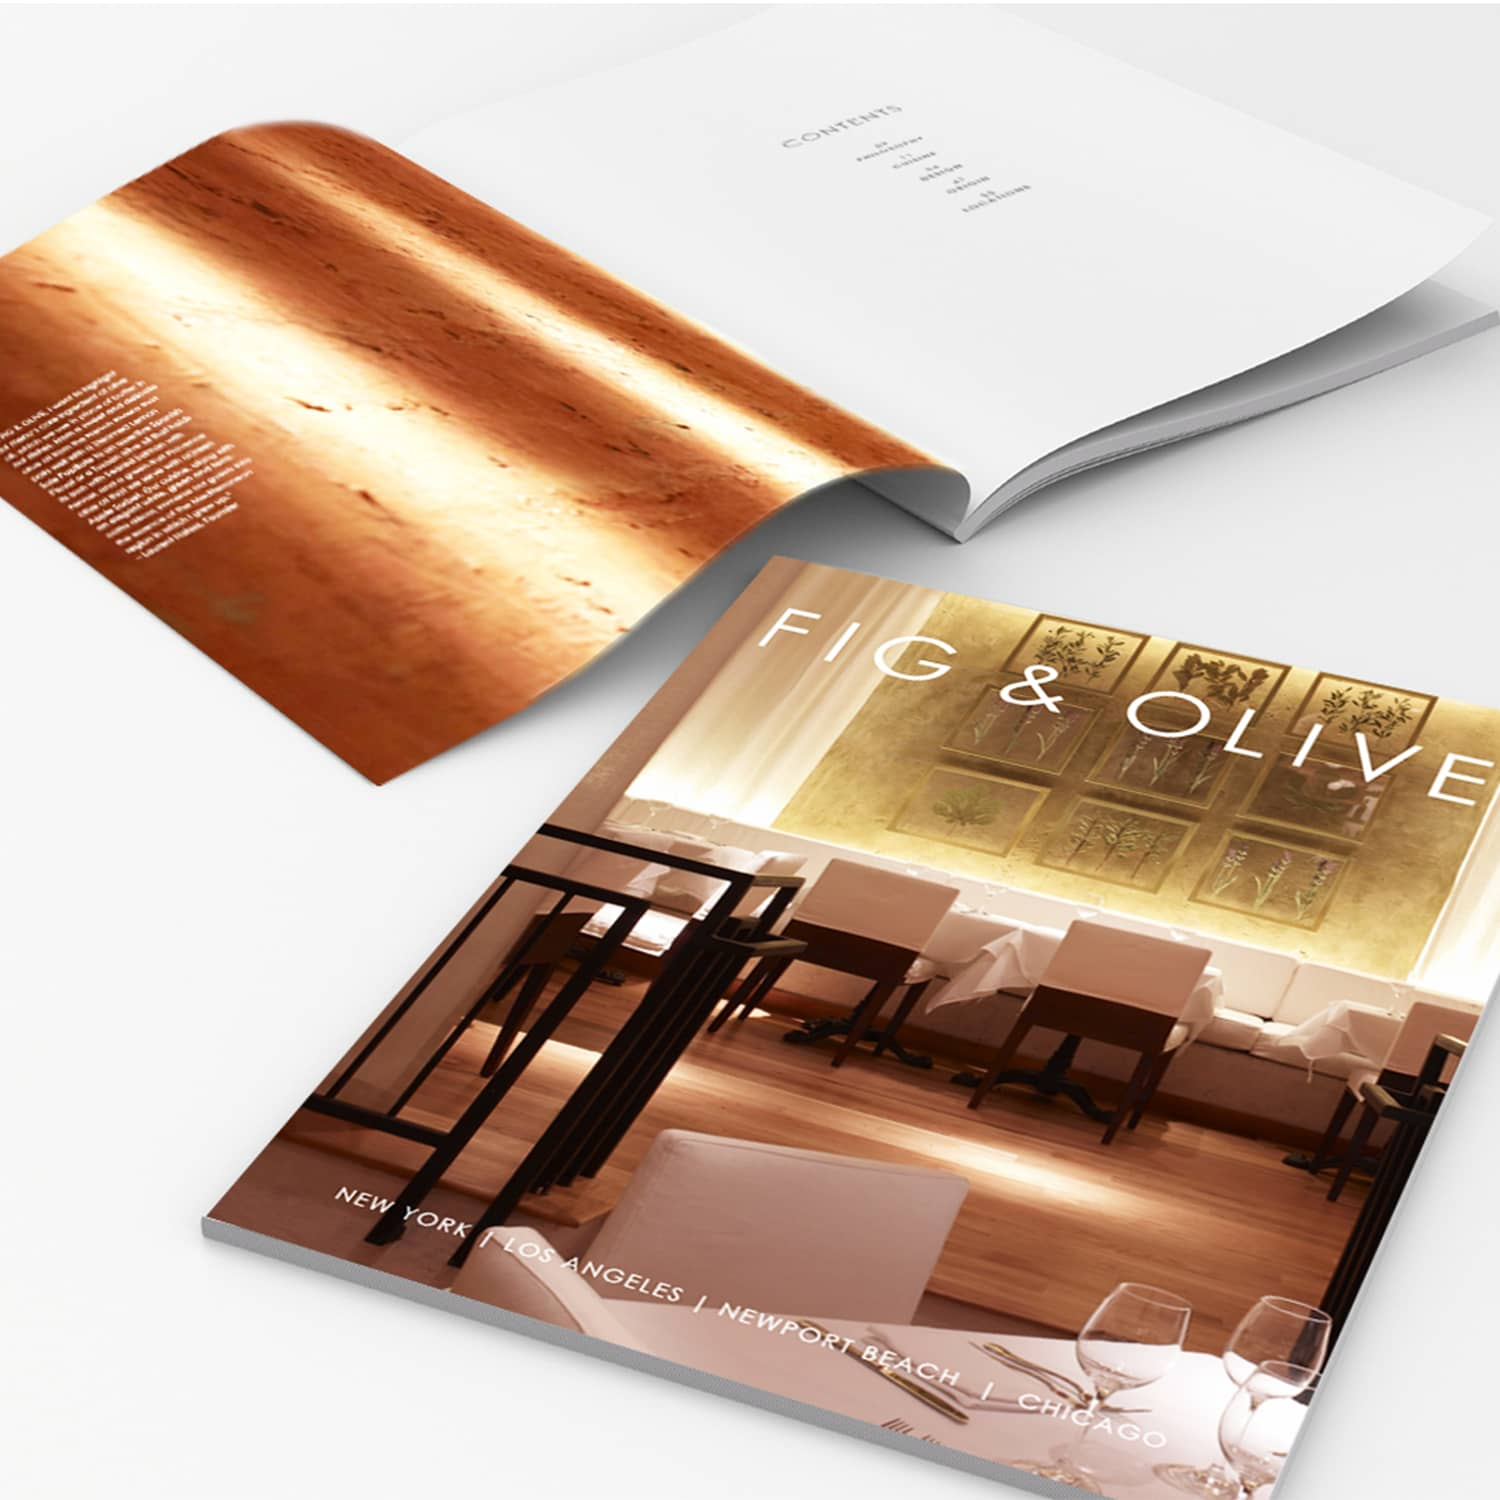 Brand Identity System for Fig & Olive